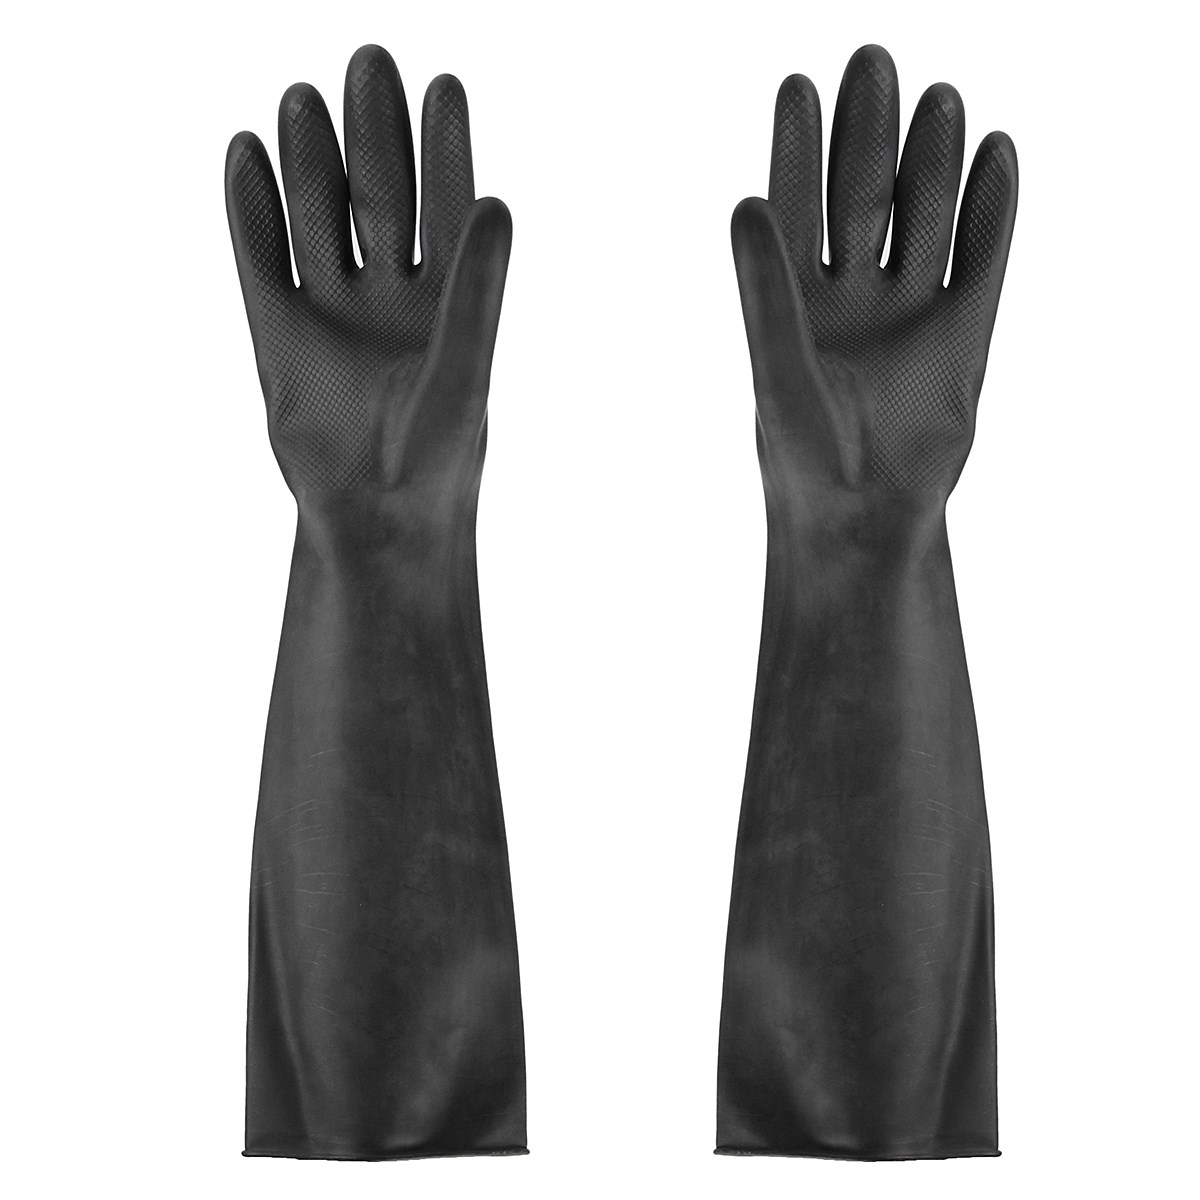 NEW Elbow-Long Industry Anti Acid Alkali Chemical Resistant Rubber Work Gloves Safety Glove anti acid and alkali chemical corrosion fisheries agriculture latex rubber gloves labor supplies black